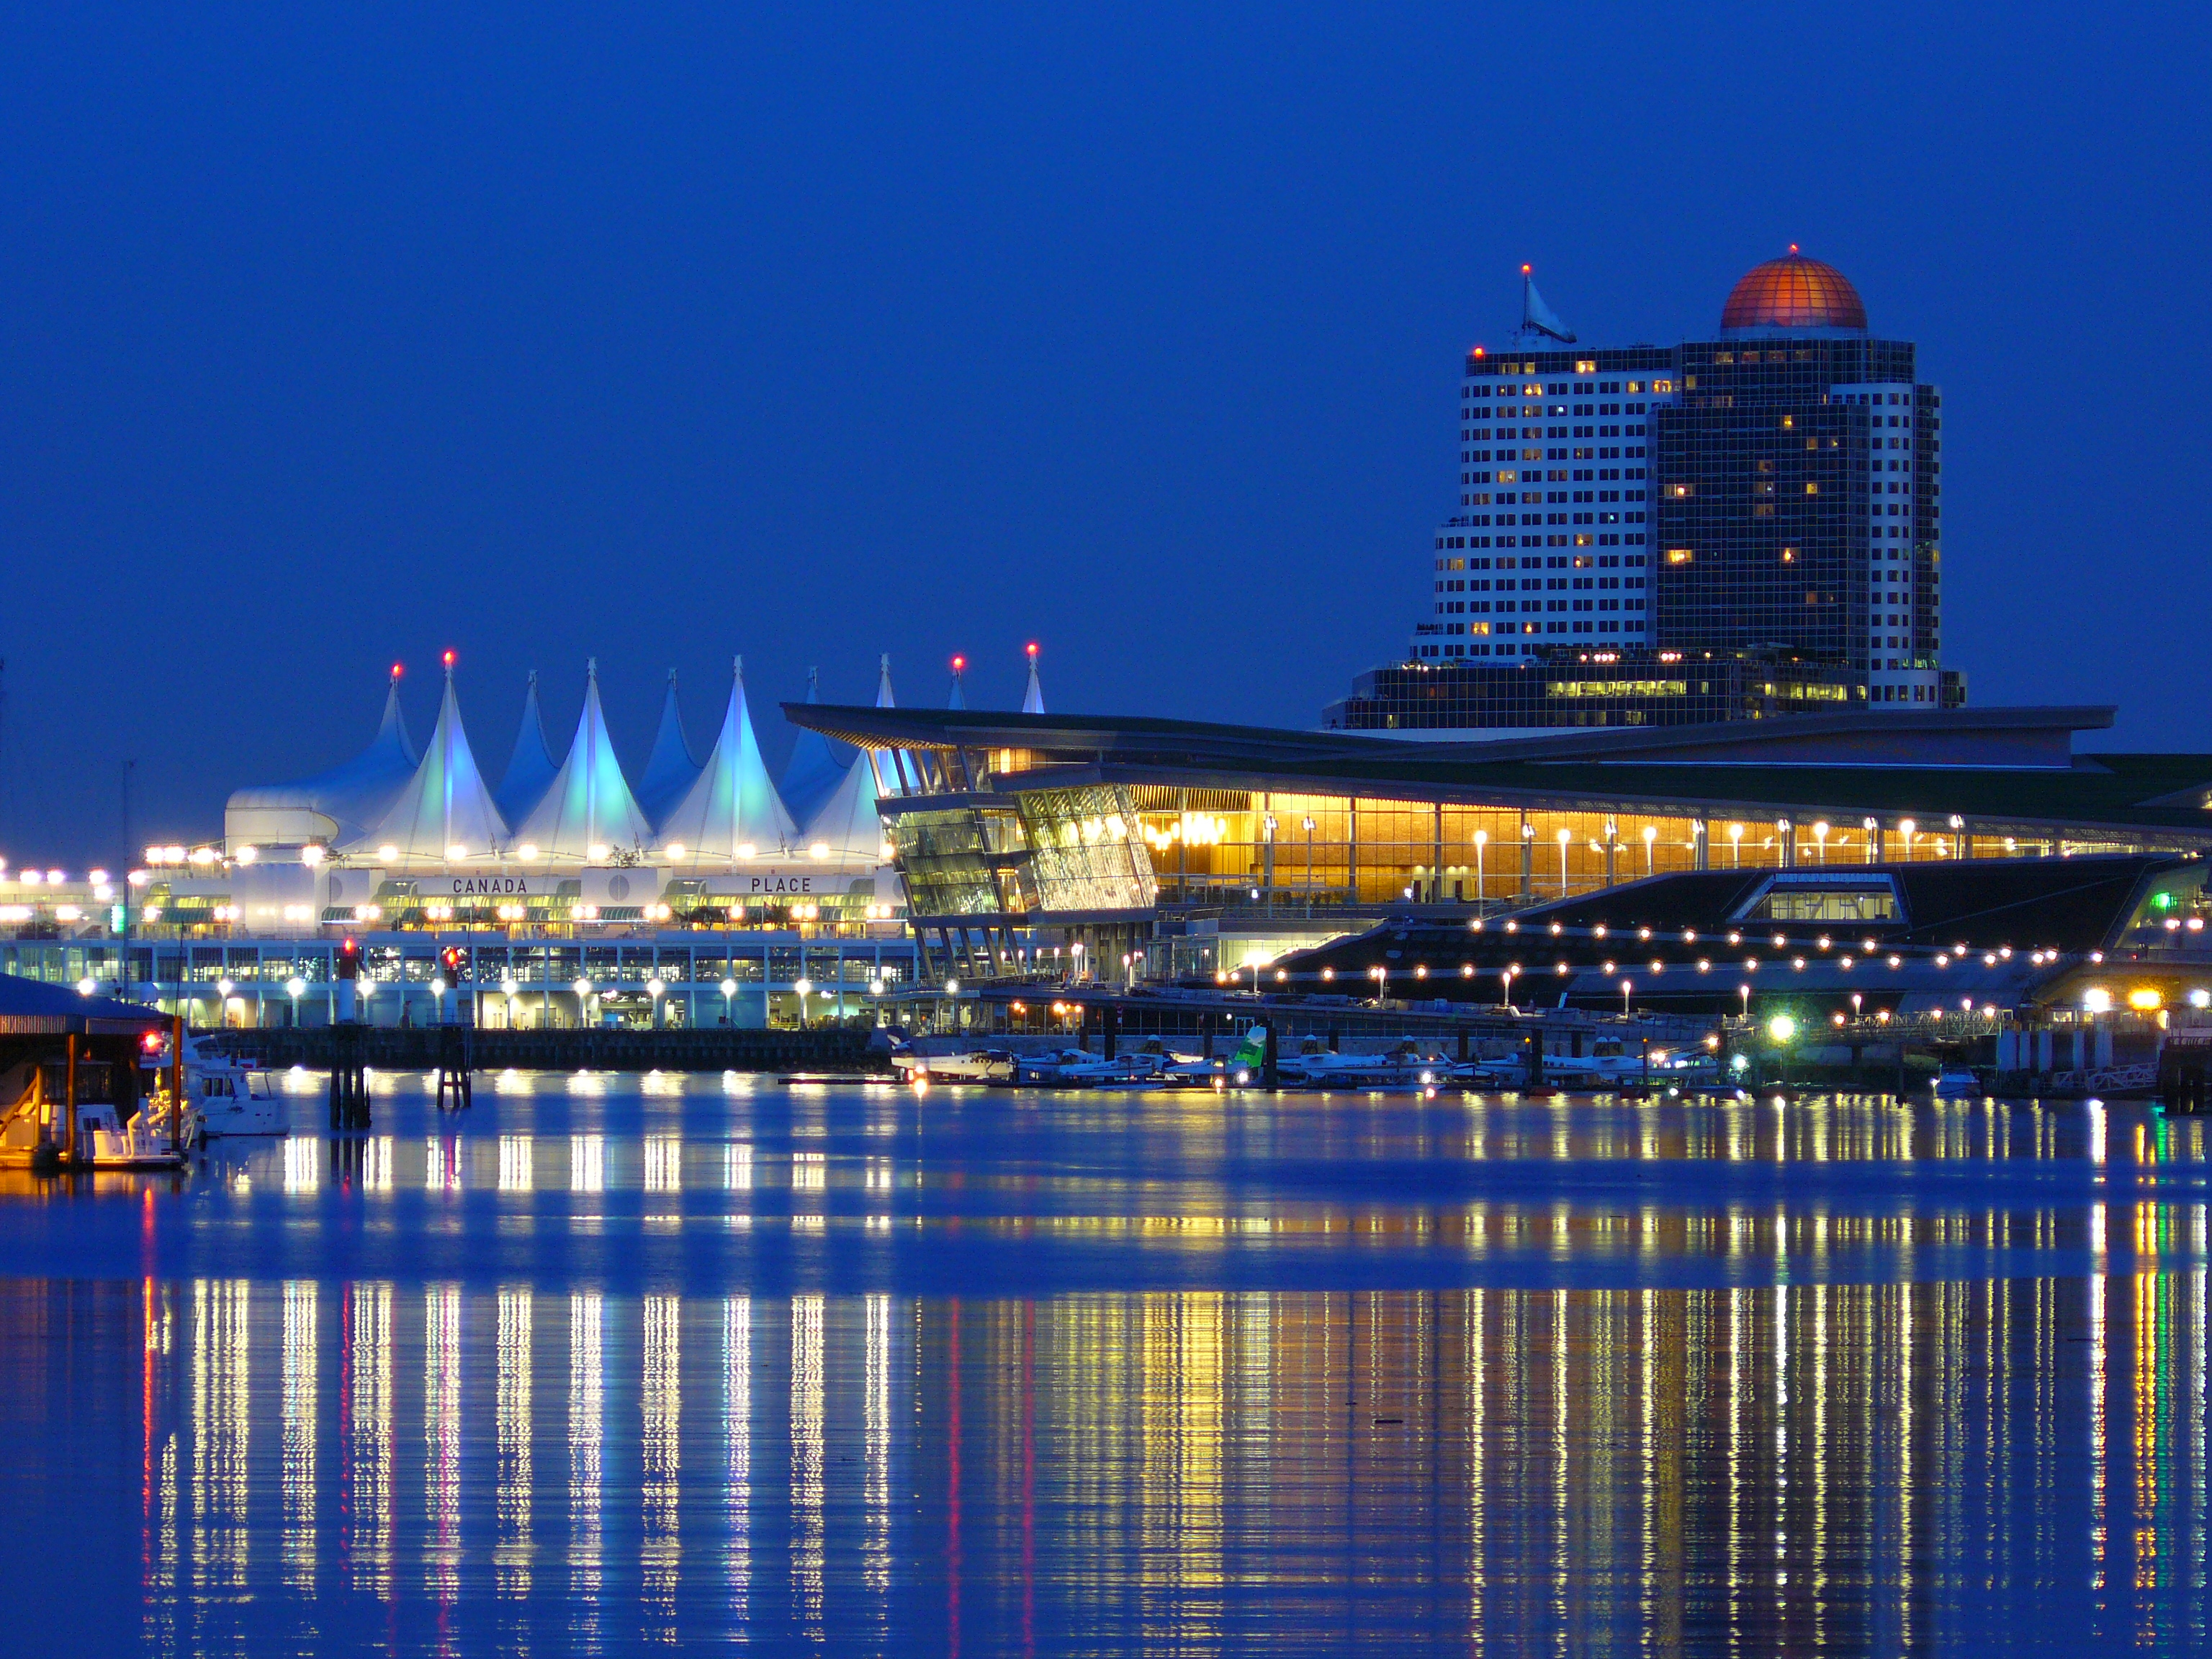 File:VancouverConventionCenter.JPG - Wikimedia Commons